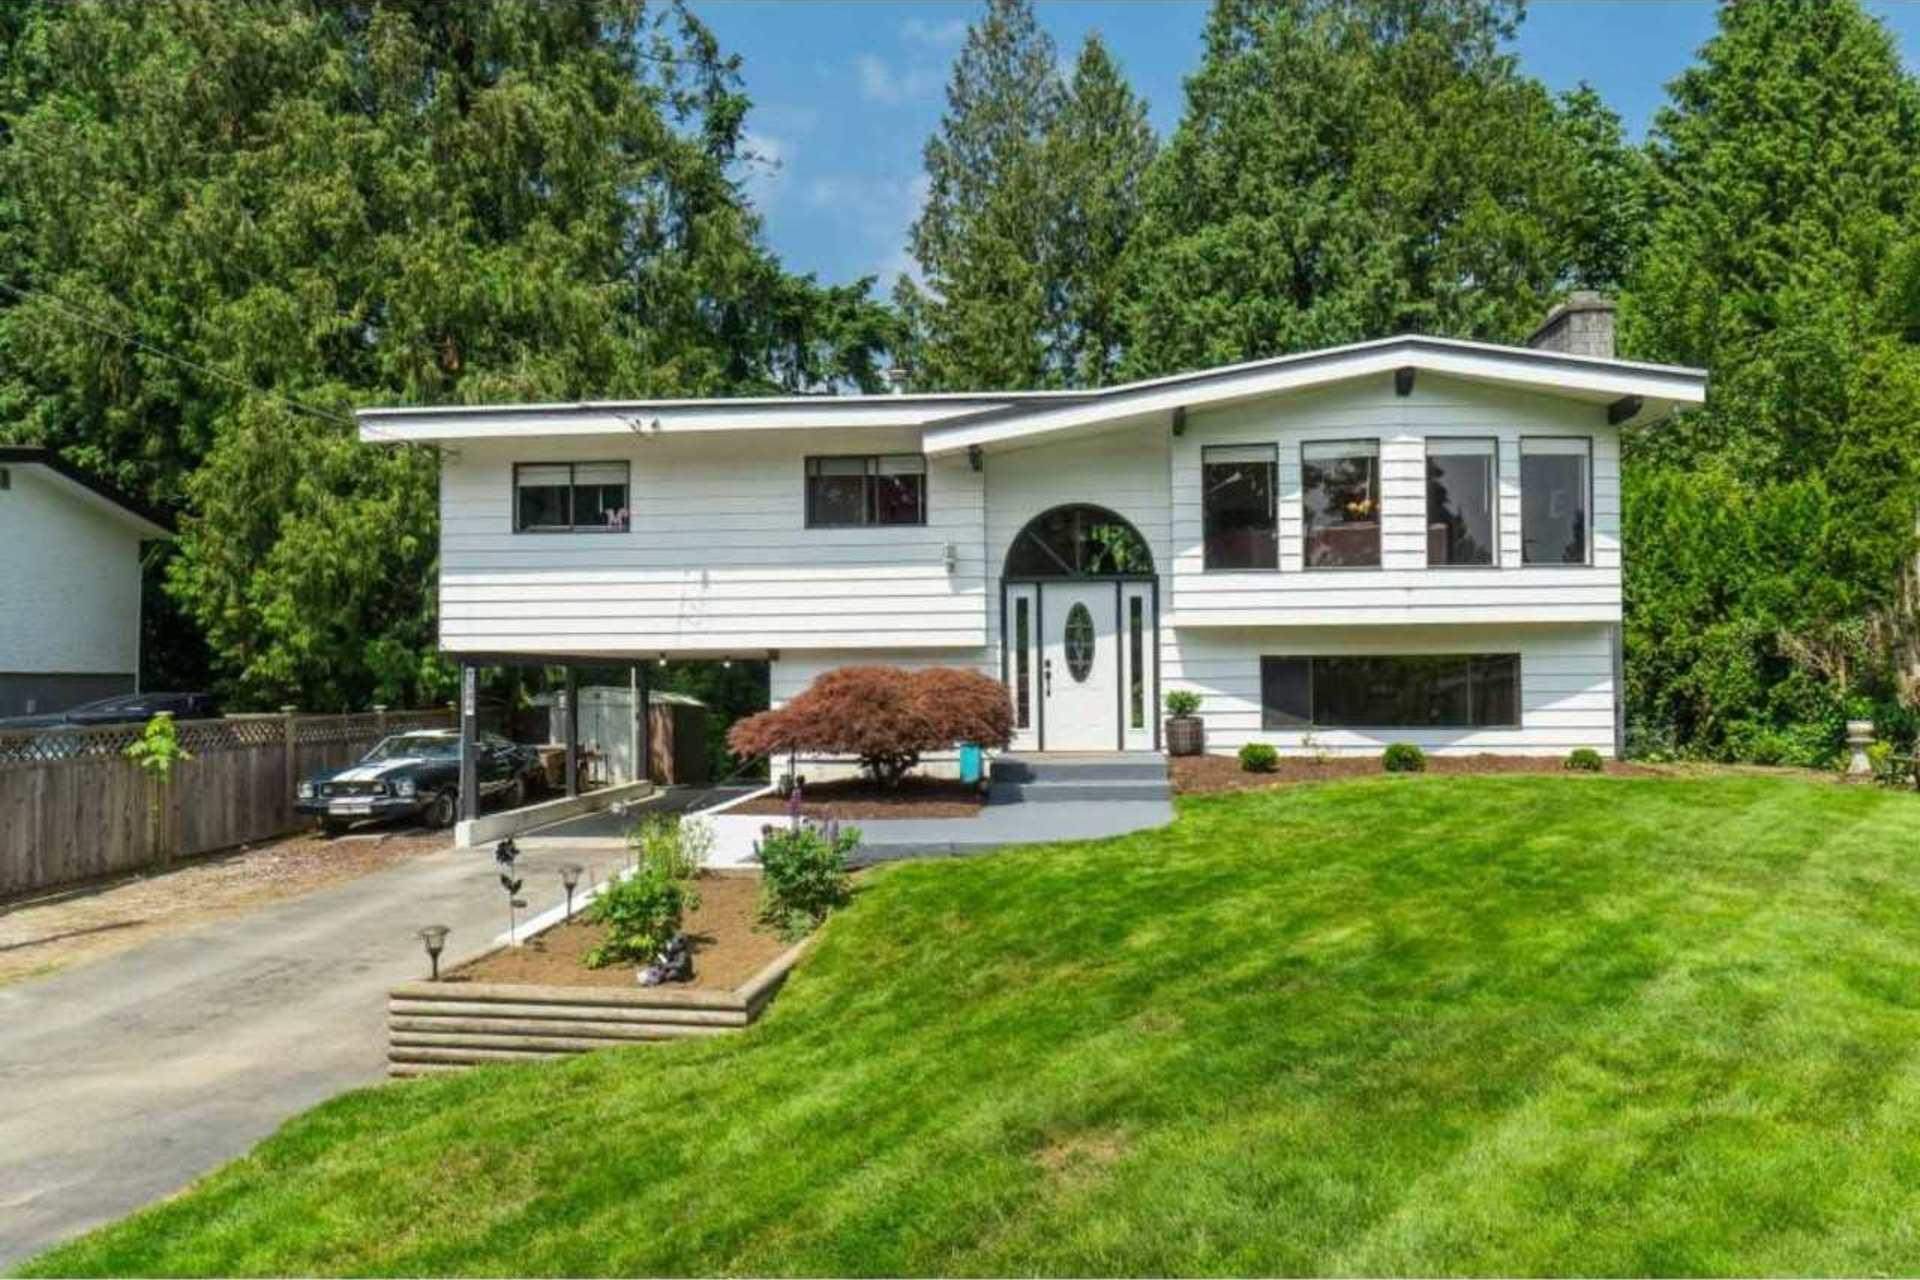 7584 Bluejay Crescent, Mission BC, Mission